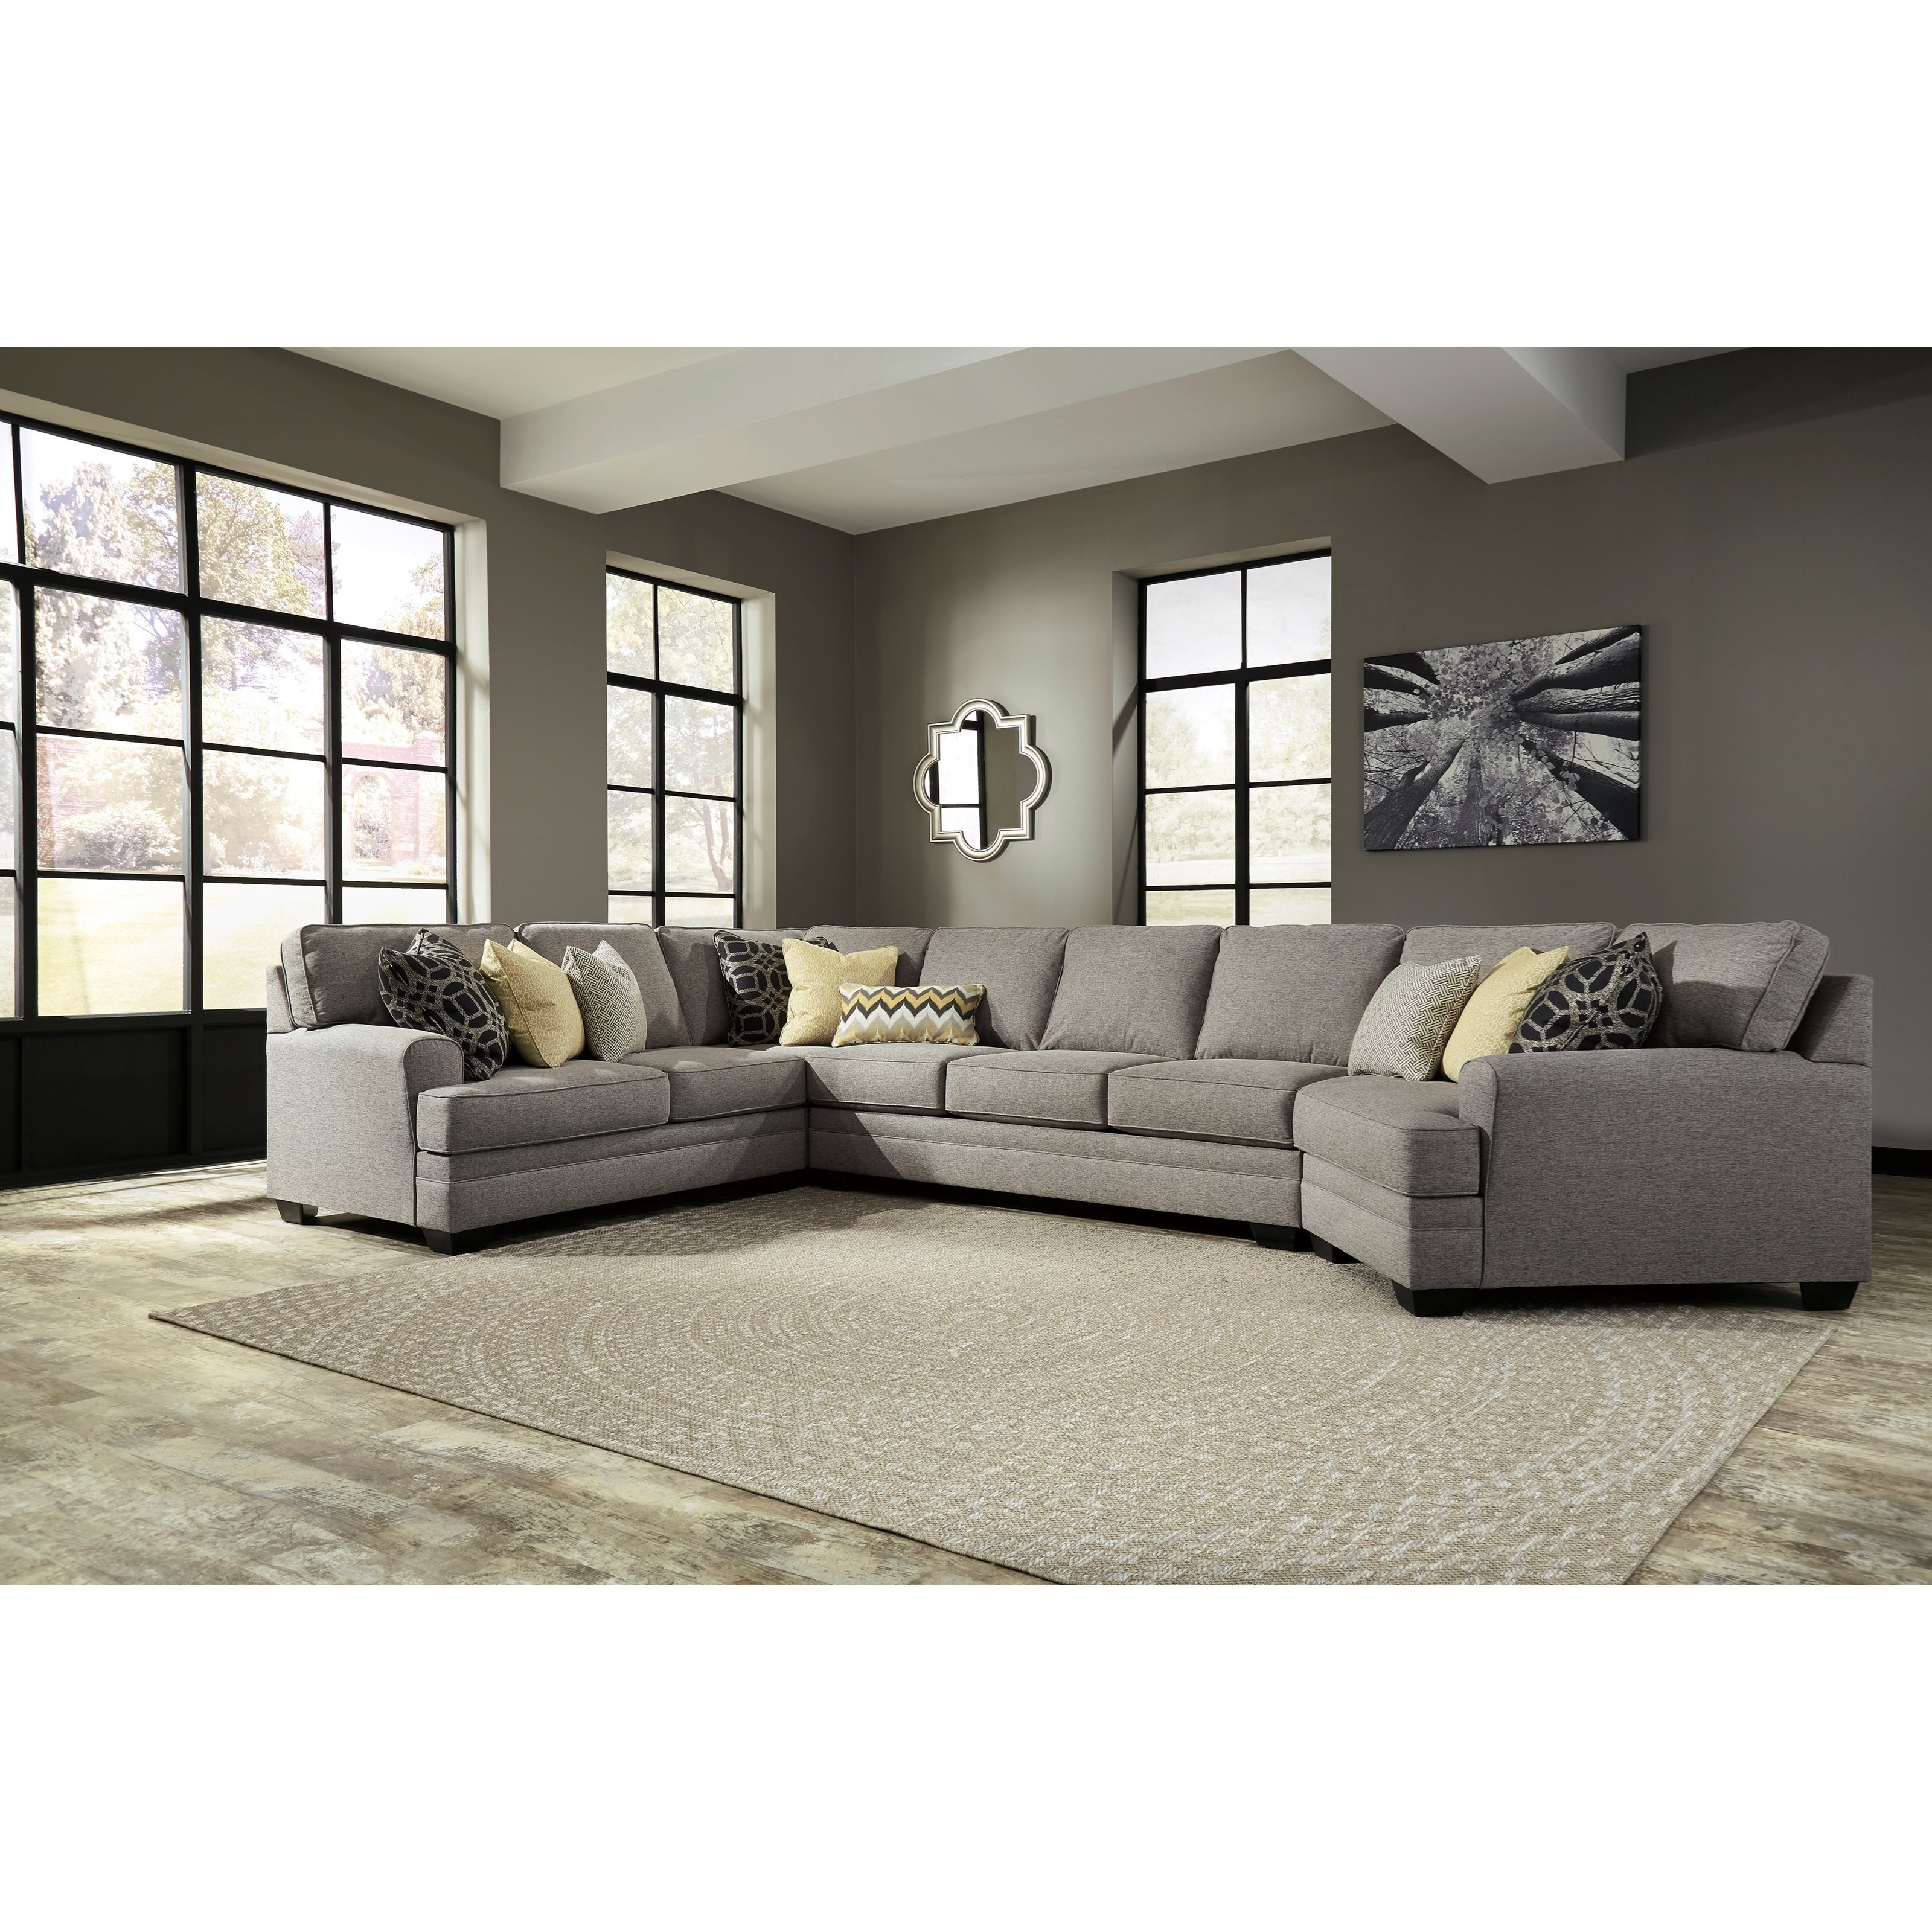 Contemporary Sectional: Benchcraft Cresson Contemporary 4-Piece Sectional W